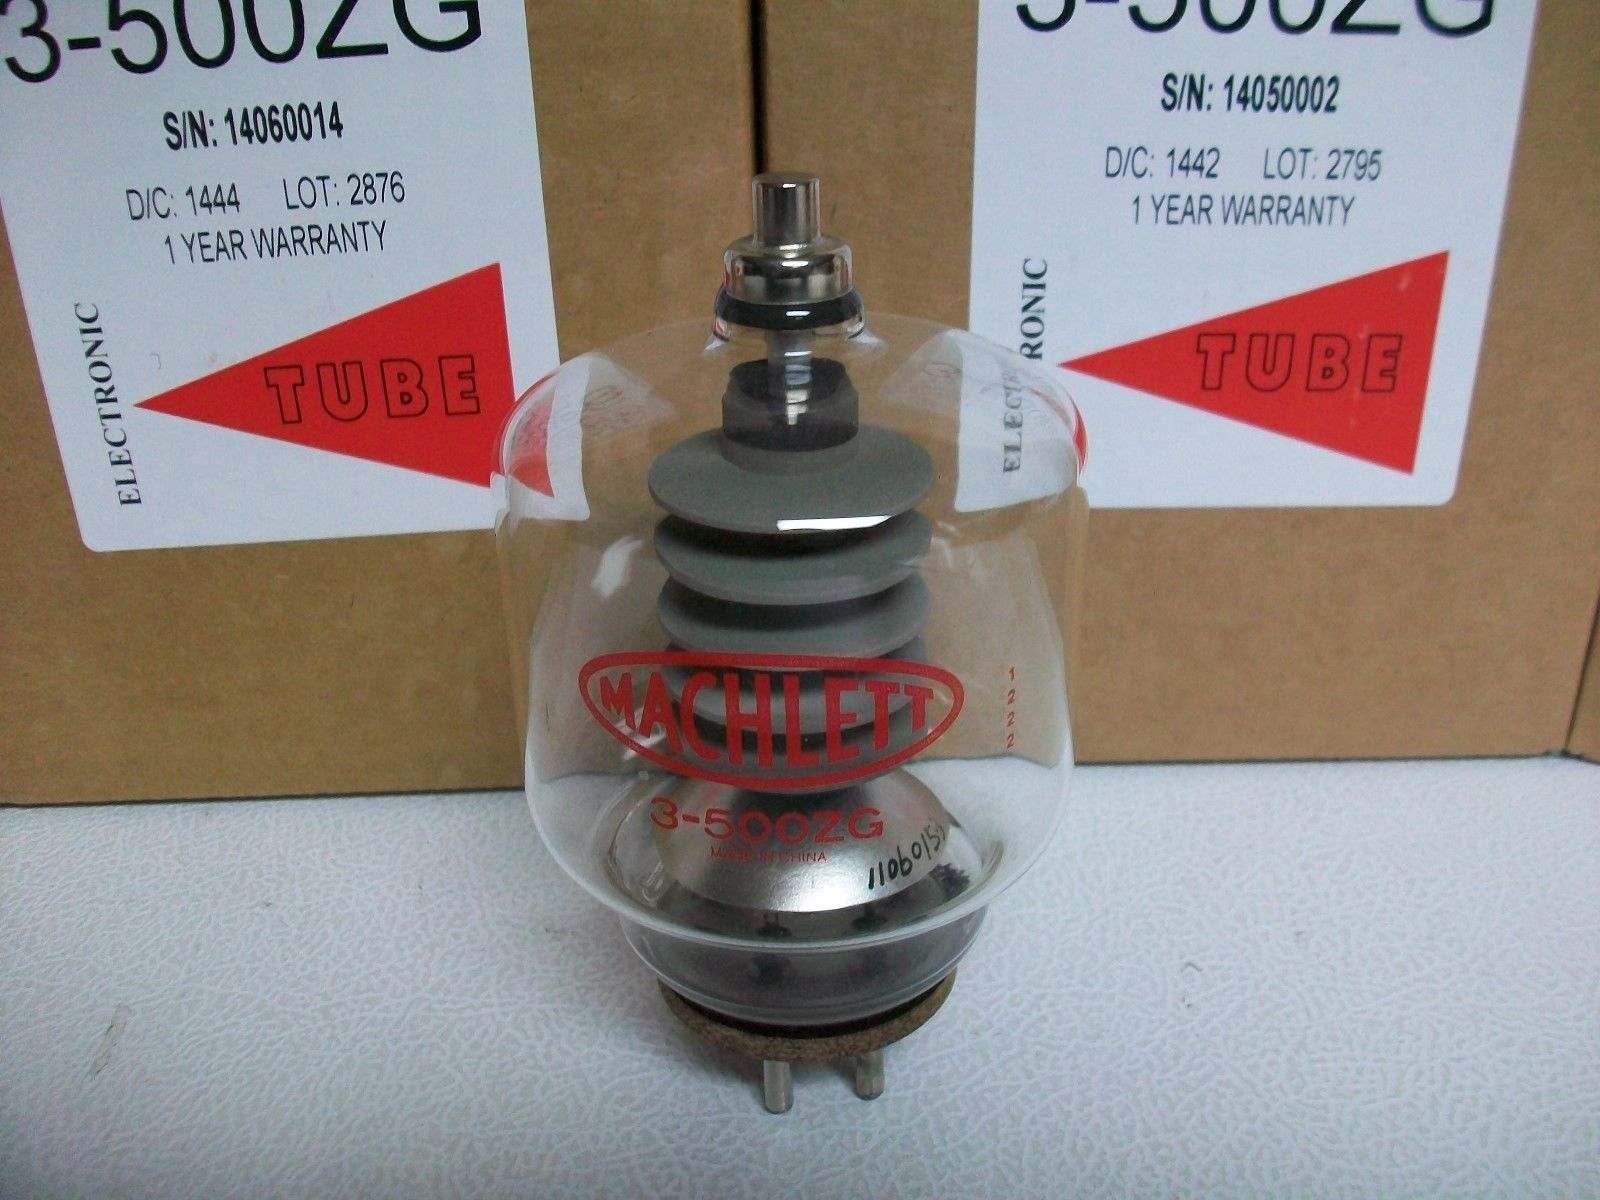 Transmitter Valves Uk Fm 45w With Valve 3 500zg Amplifier New And Sealed Box